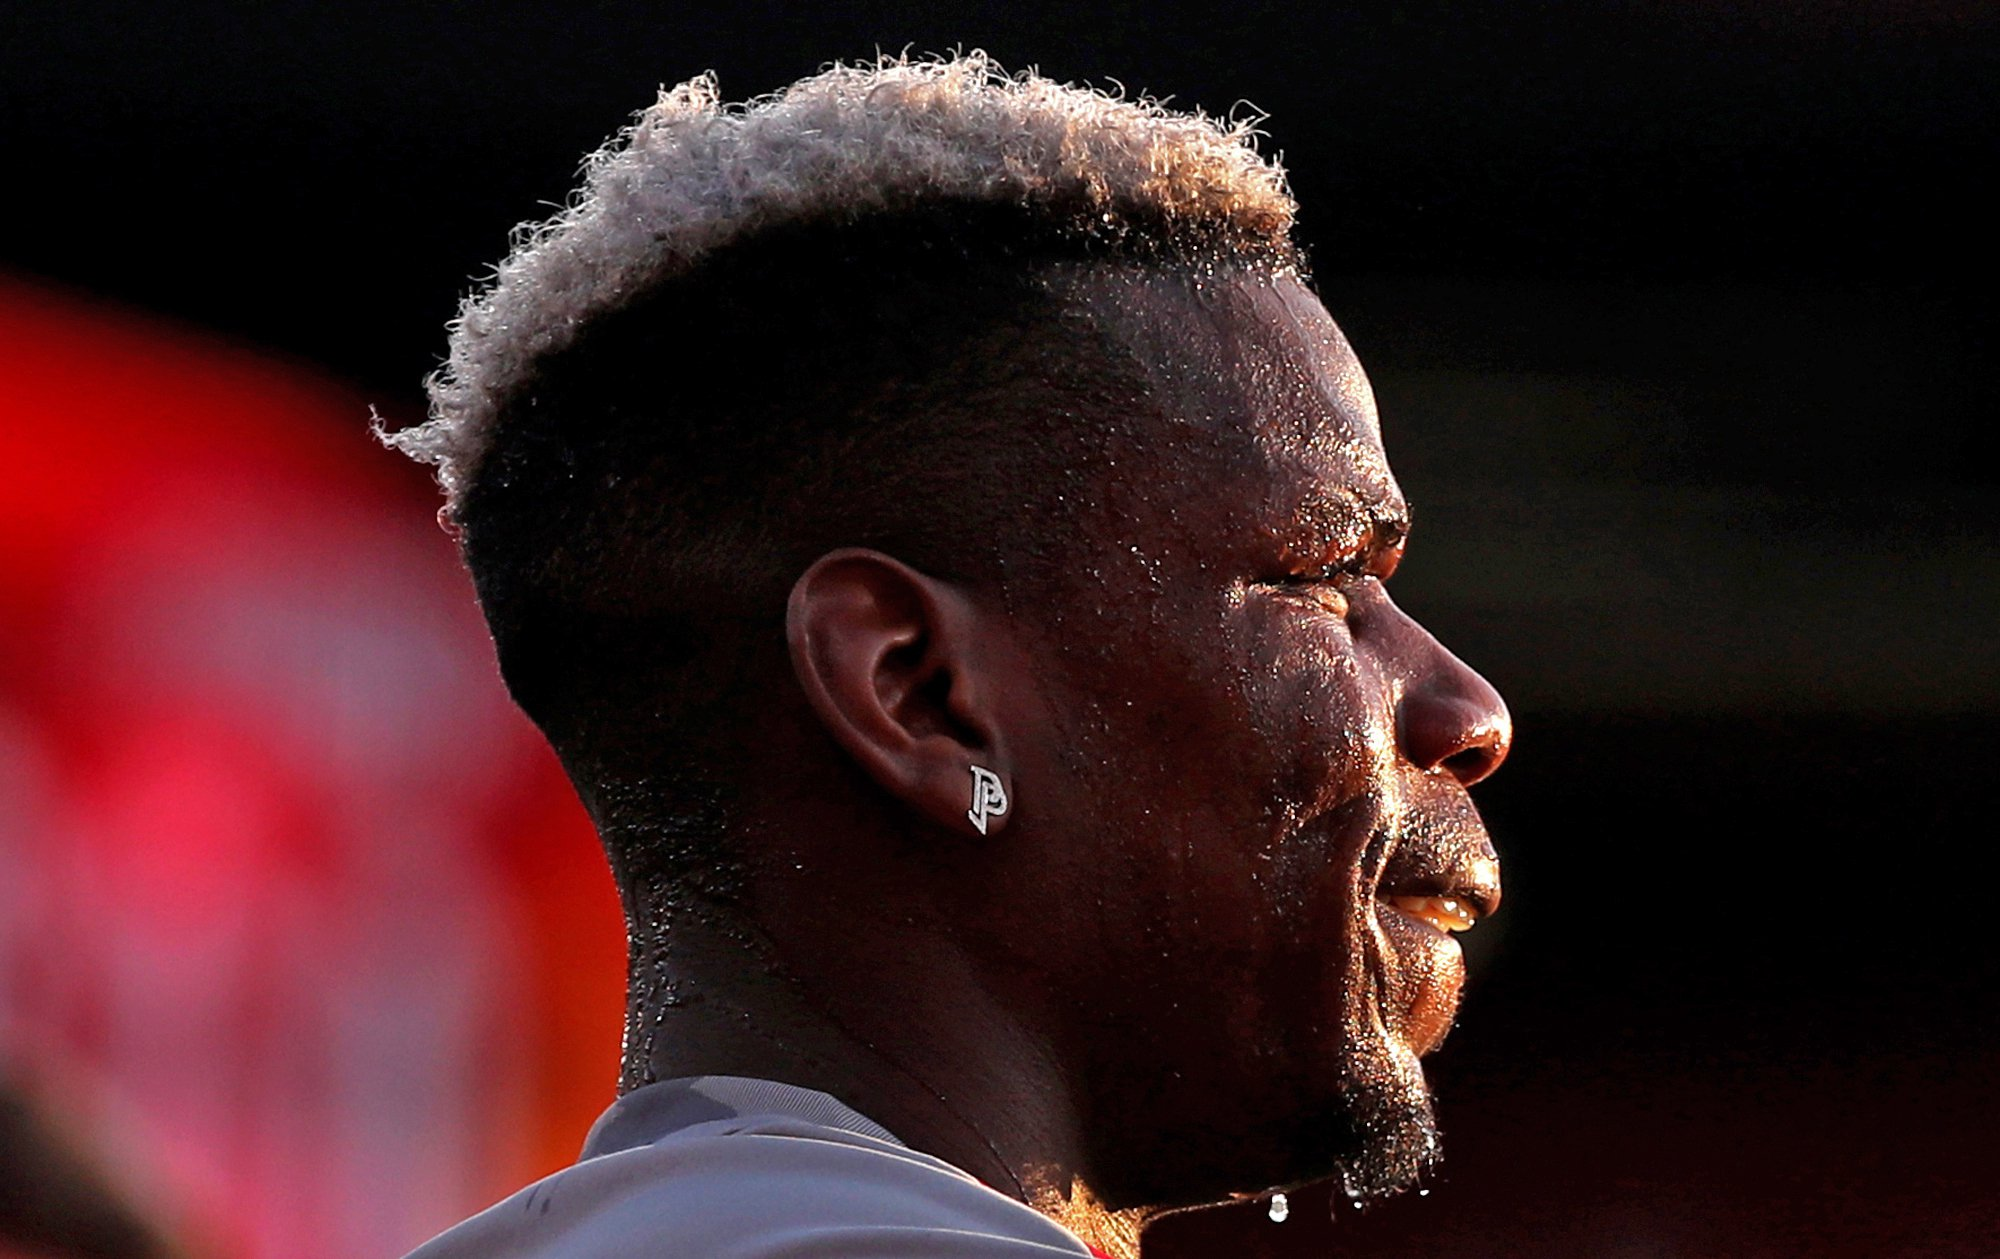 """Manchester United's Paul Pogba warms up before the Premier League match at the Vitality Stadium, Bournemouth. PRESS ASSOCIATION Photo. Picture date: Wednesday April 18, 2018. See PA story SOCCER Bournemouth. Photo credit should read: Adam Davy/PA Wire. RESTRICTIONS: EDITORIAL USE ONLY No use with unauthorised audio, video, data, fixture lists, club/league logos or """"live"""" services. Online in-match use limited to 75 images, no video emulation. No use in betting, games or single club/league/player publications."""